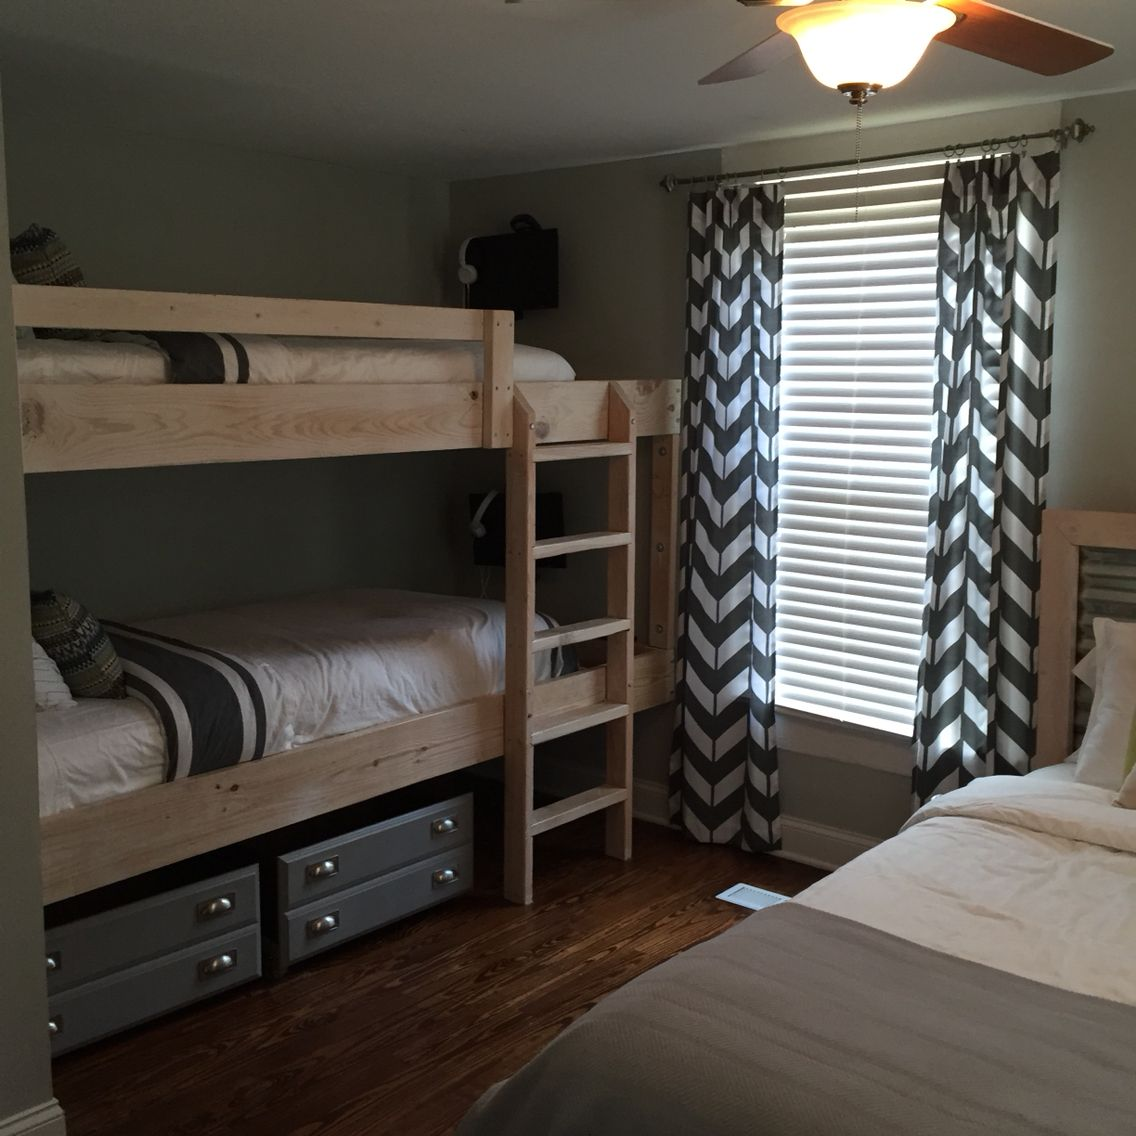 City Of Chattanooga In Tennessee Bunk Beds In Bedroom 2 Homeaway